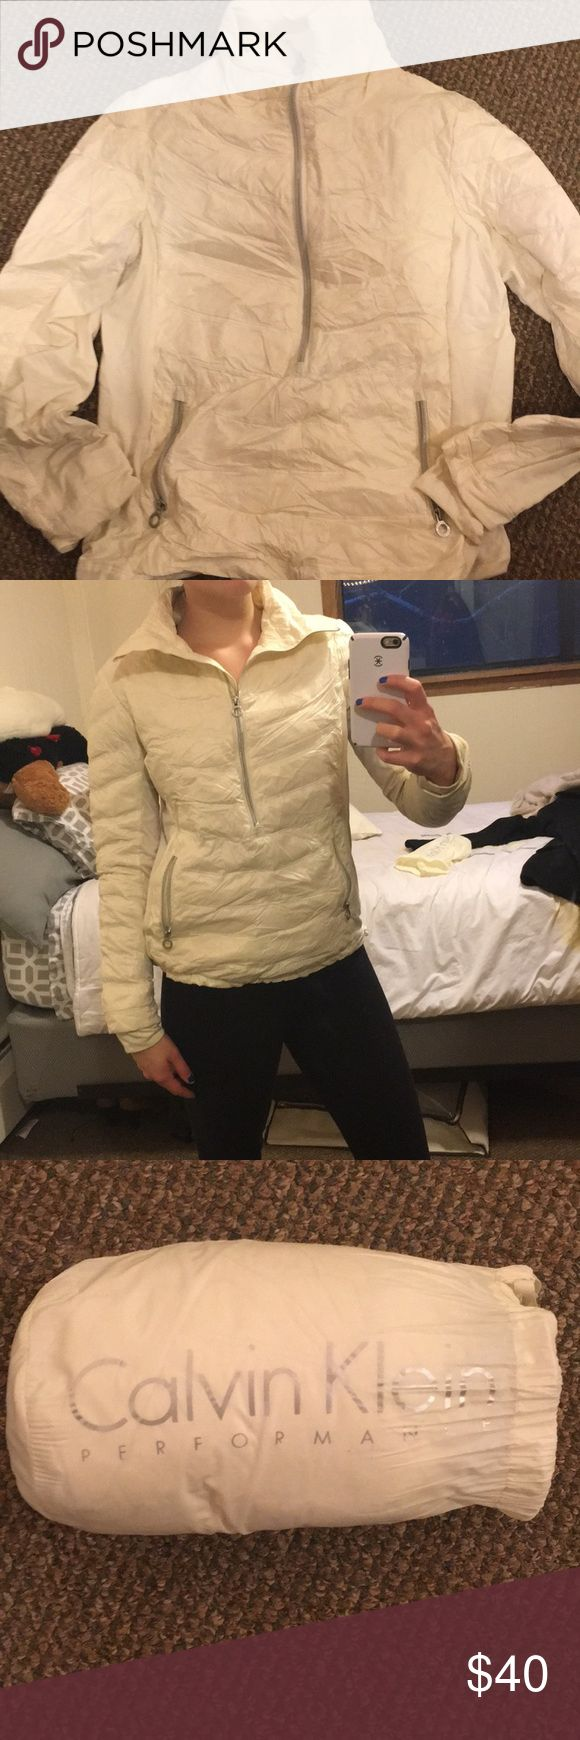 Calvin Klein Women's Pull-over Jacket. Calvin Klein cream colored light weight pull-over jacket. Comes with a cinch-able travel bag that the jacket rolls up into. Half-zip jacket with cinch-able waistline and two front pockets. Worn a few times but in great condition. Calvin Klein Jackets & Coats